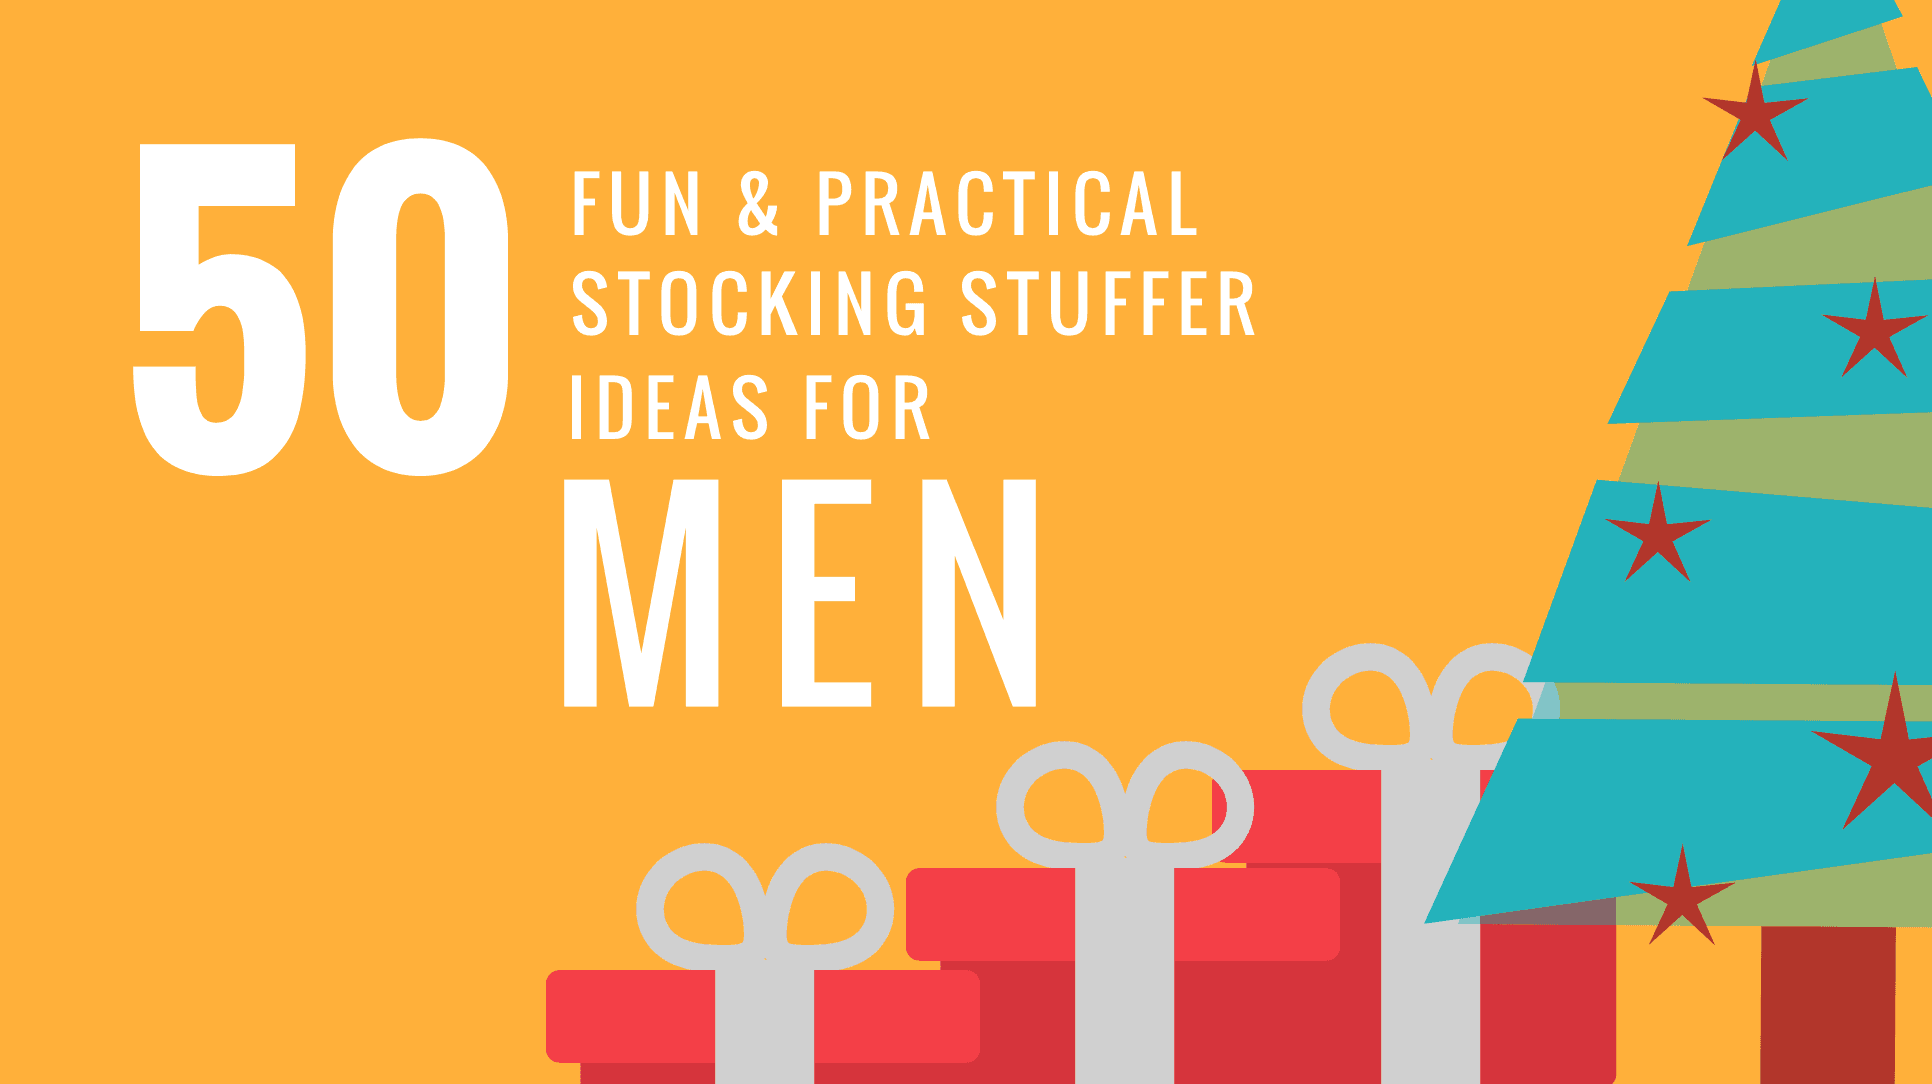 Helping you find gifts for the men-in-your life that are small, meaningful and fit into a stocking! Here are 50 excellent stocking stuffers for him! 50 Stocking Stuffers For Him. Men's Stocking Stuffer Ideas at Every Price Point.